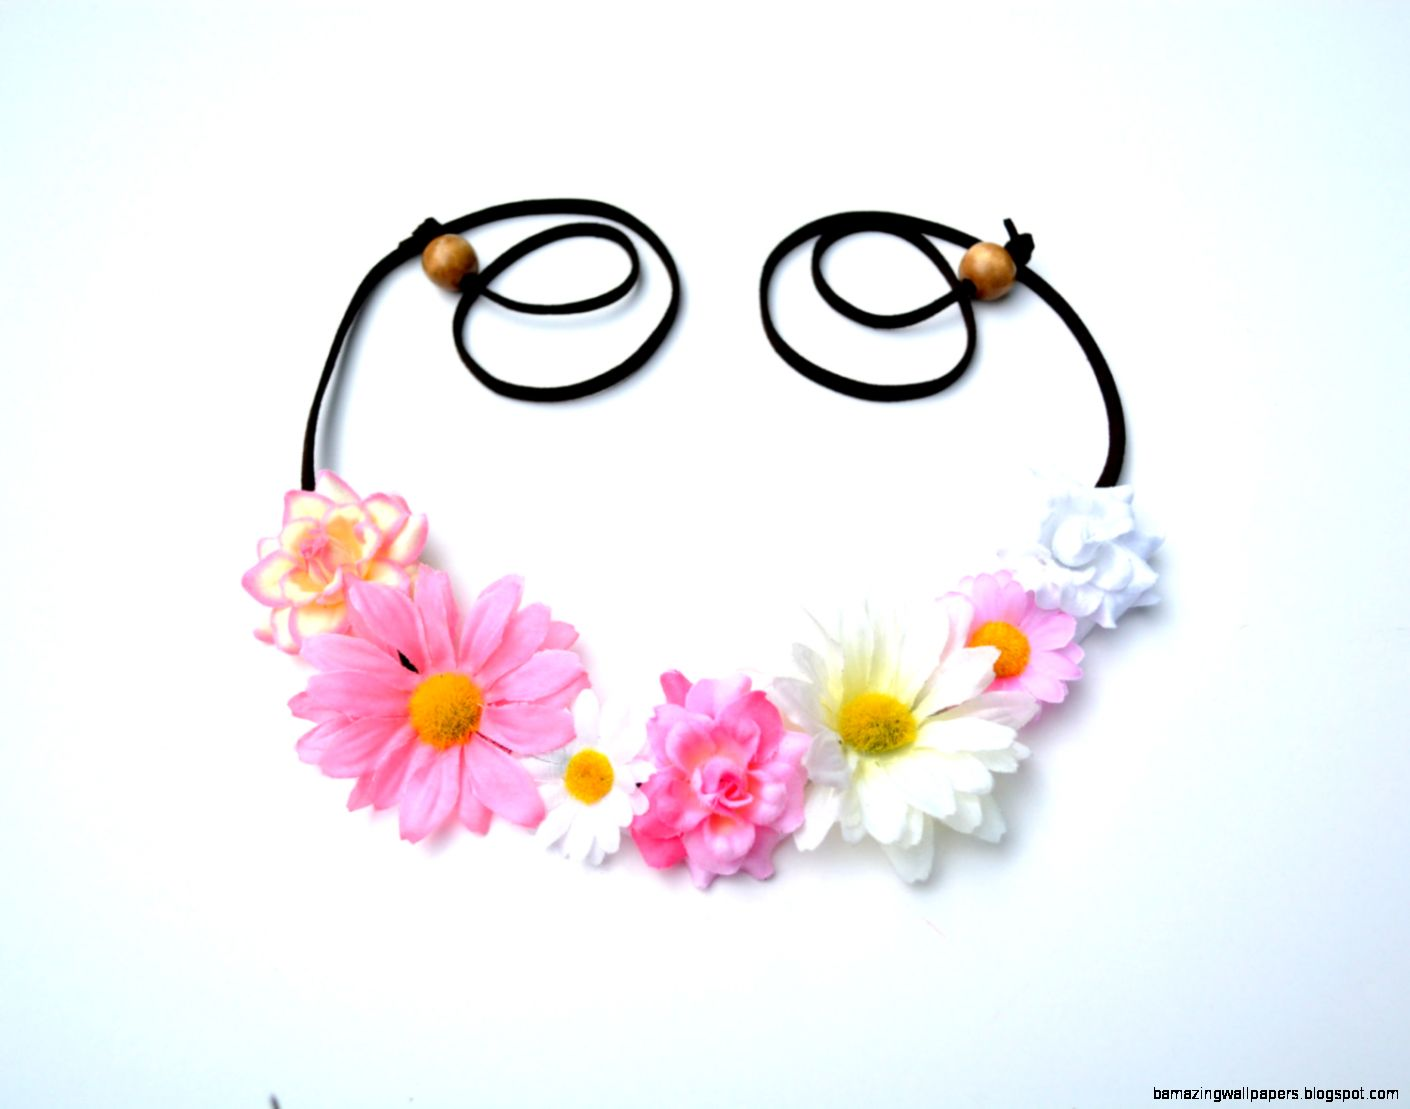 Flower crown tumblr amazing wallpapers view original size tumblr transparent flower crown related keywords suggestions izmirmasajfo